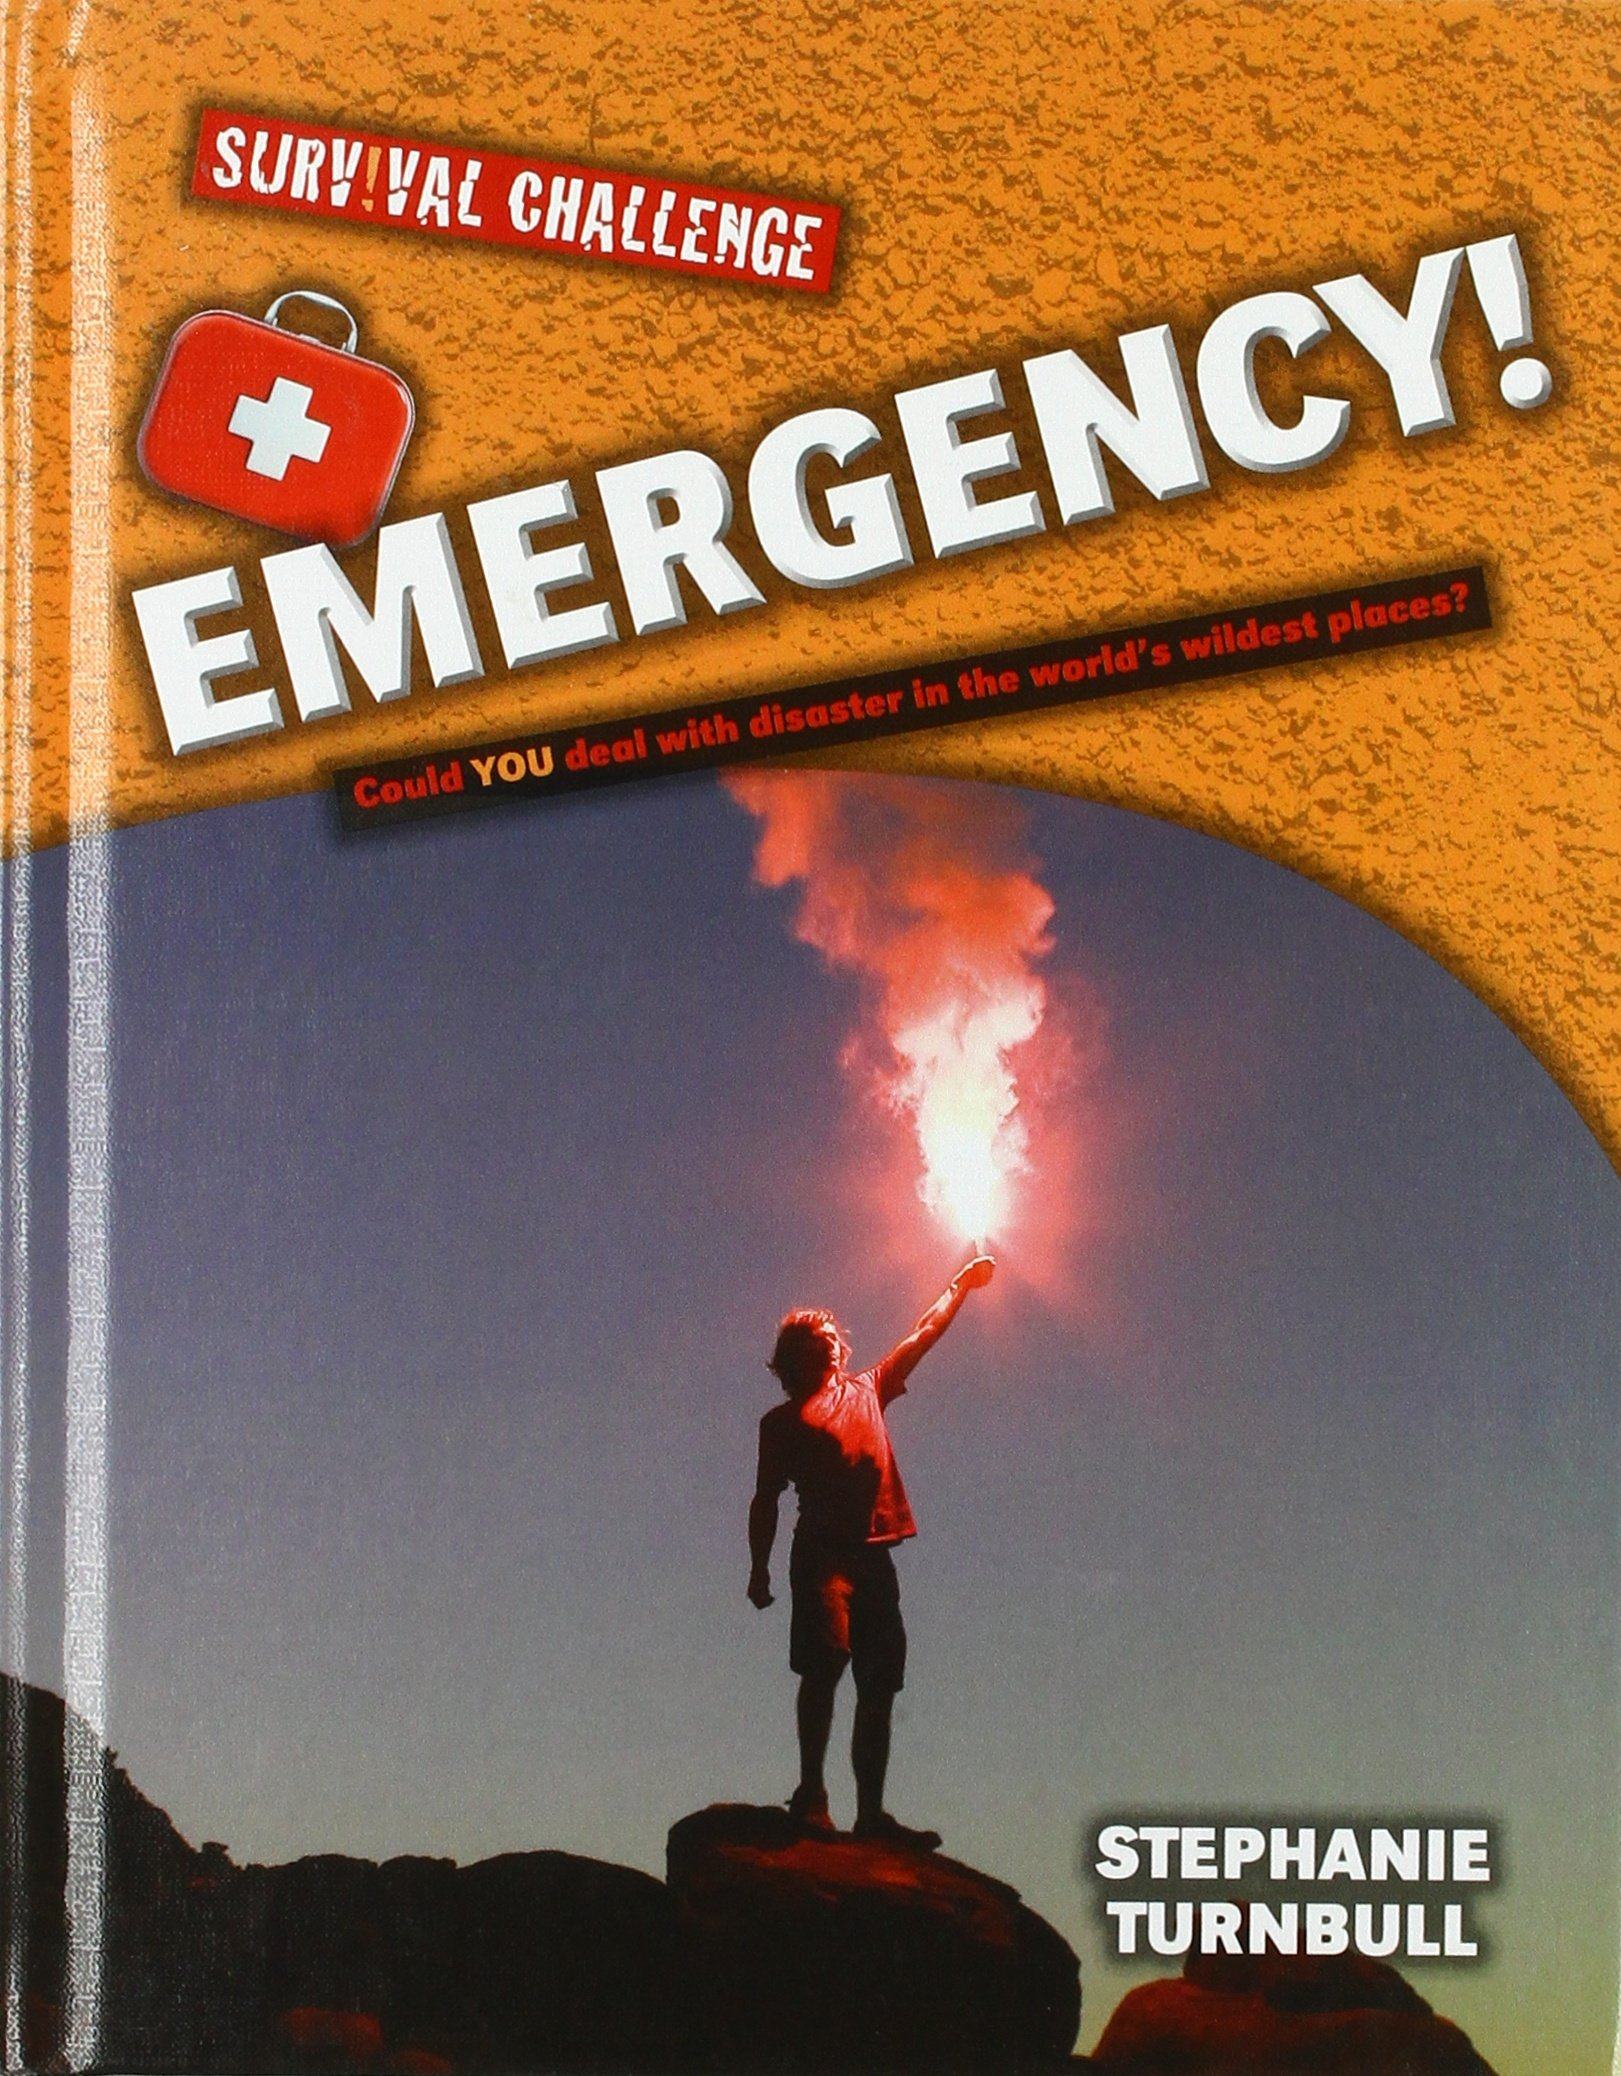 Emergency!: Could You Deal With Disaster in the World's Wildest Places? (Survival Challenge)